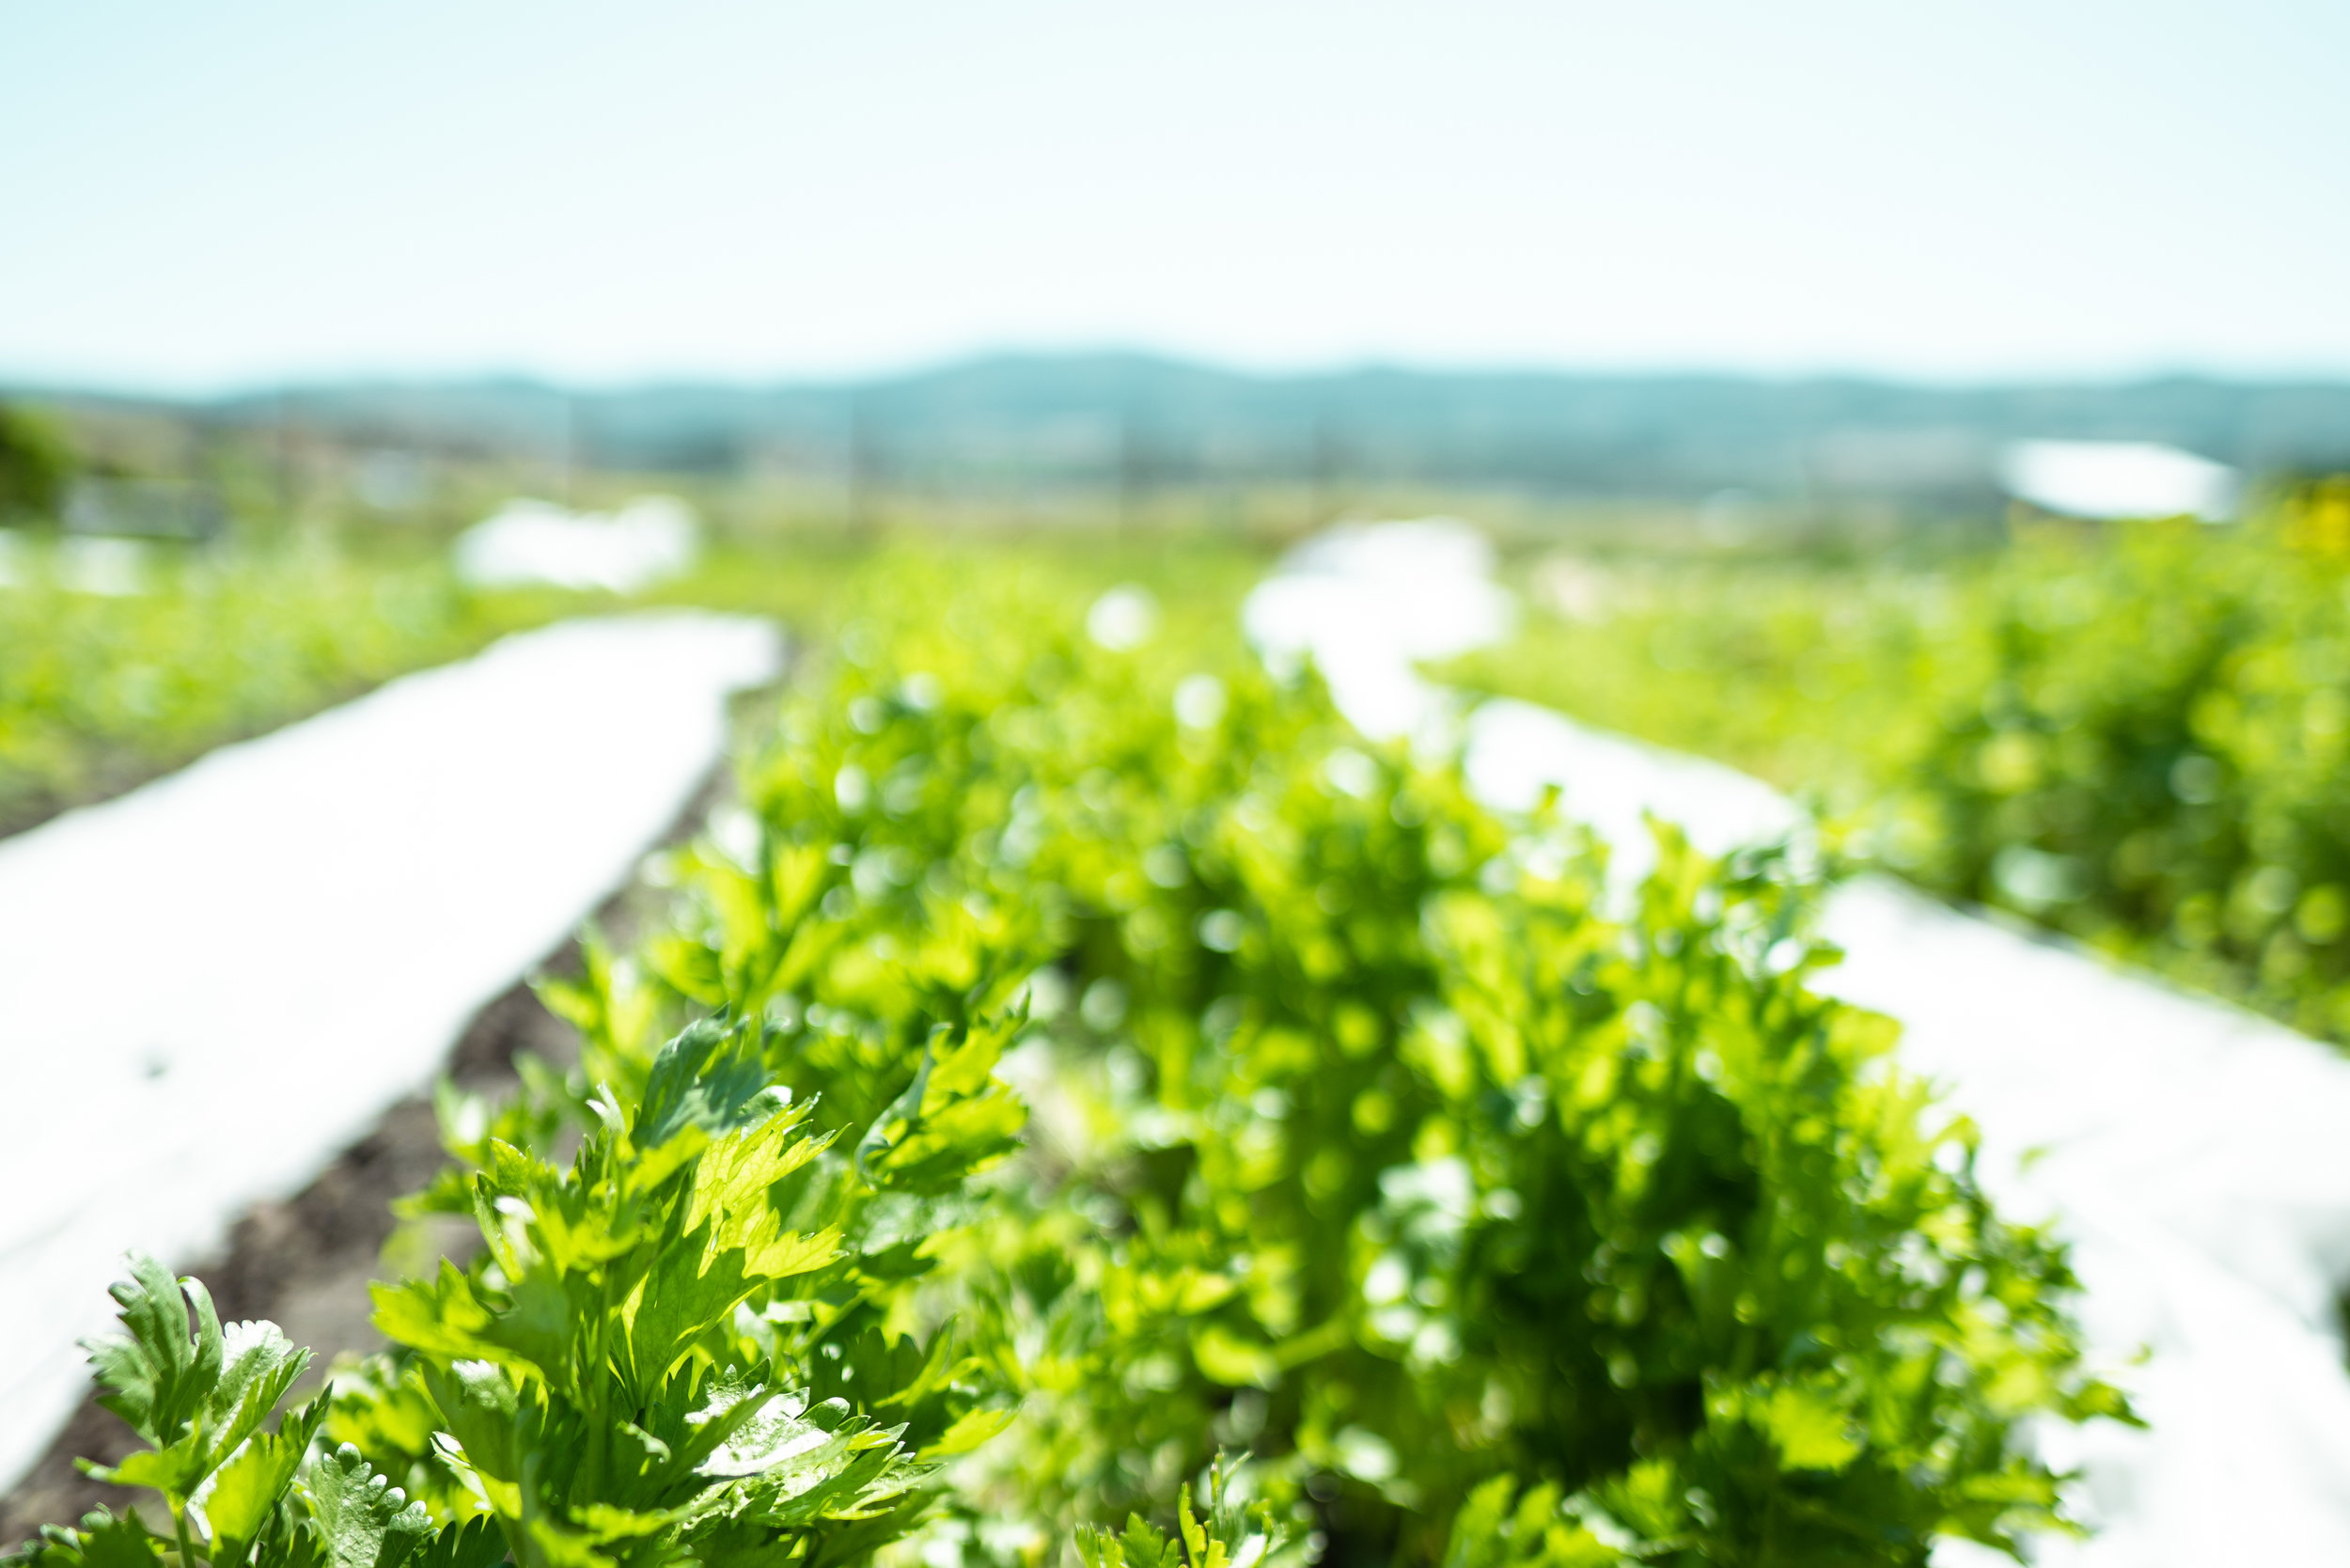 Celery at Sprig & Root Farm in Clarkston, Montana.